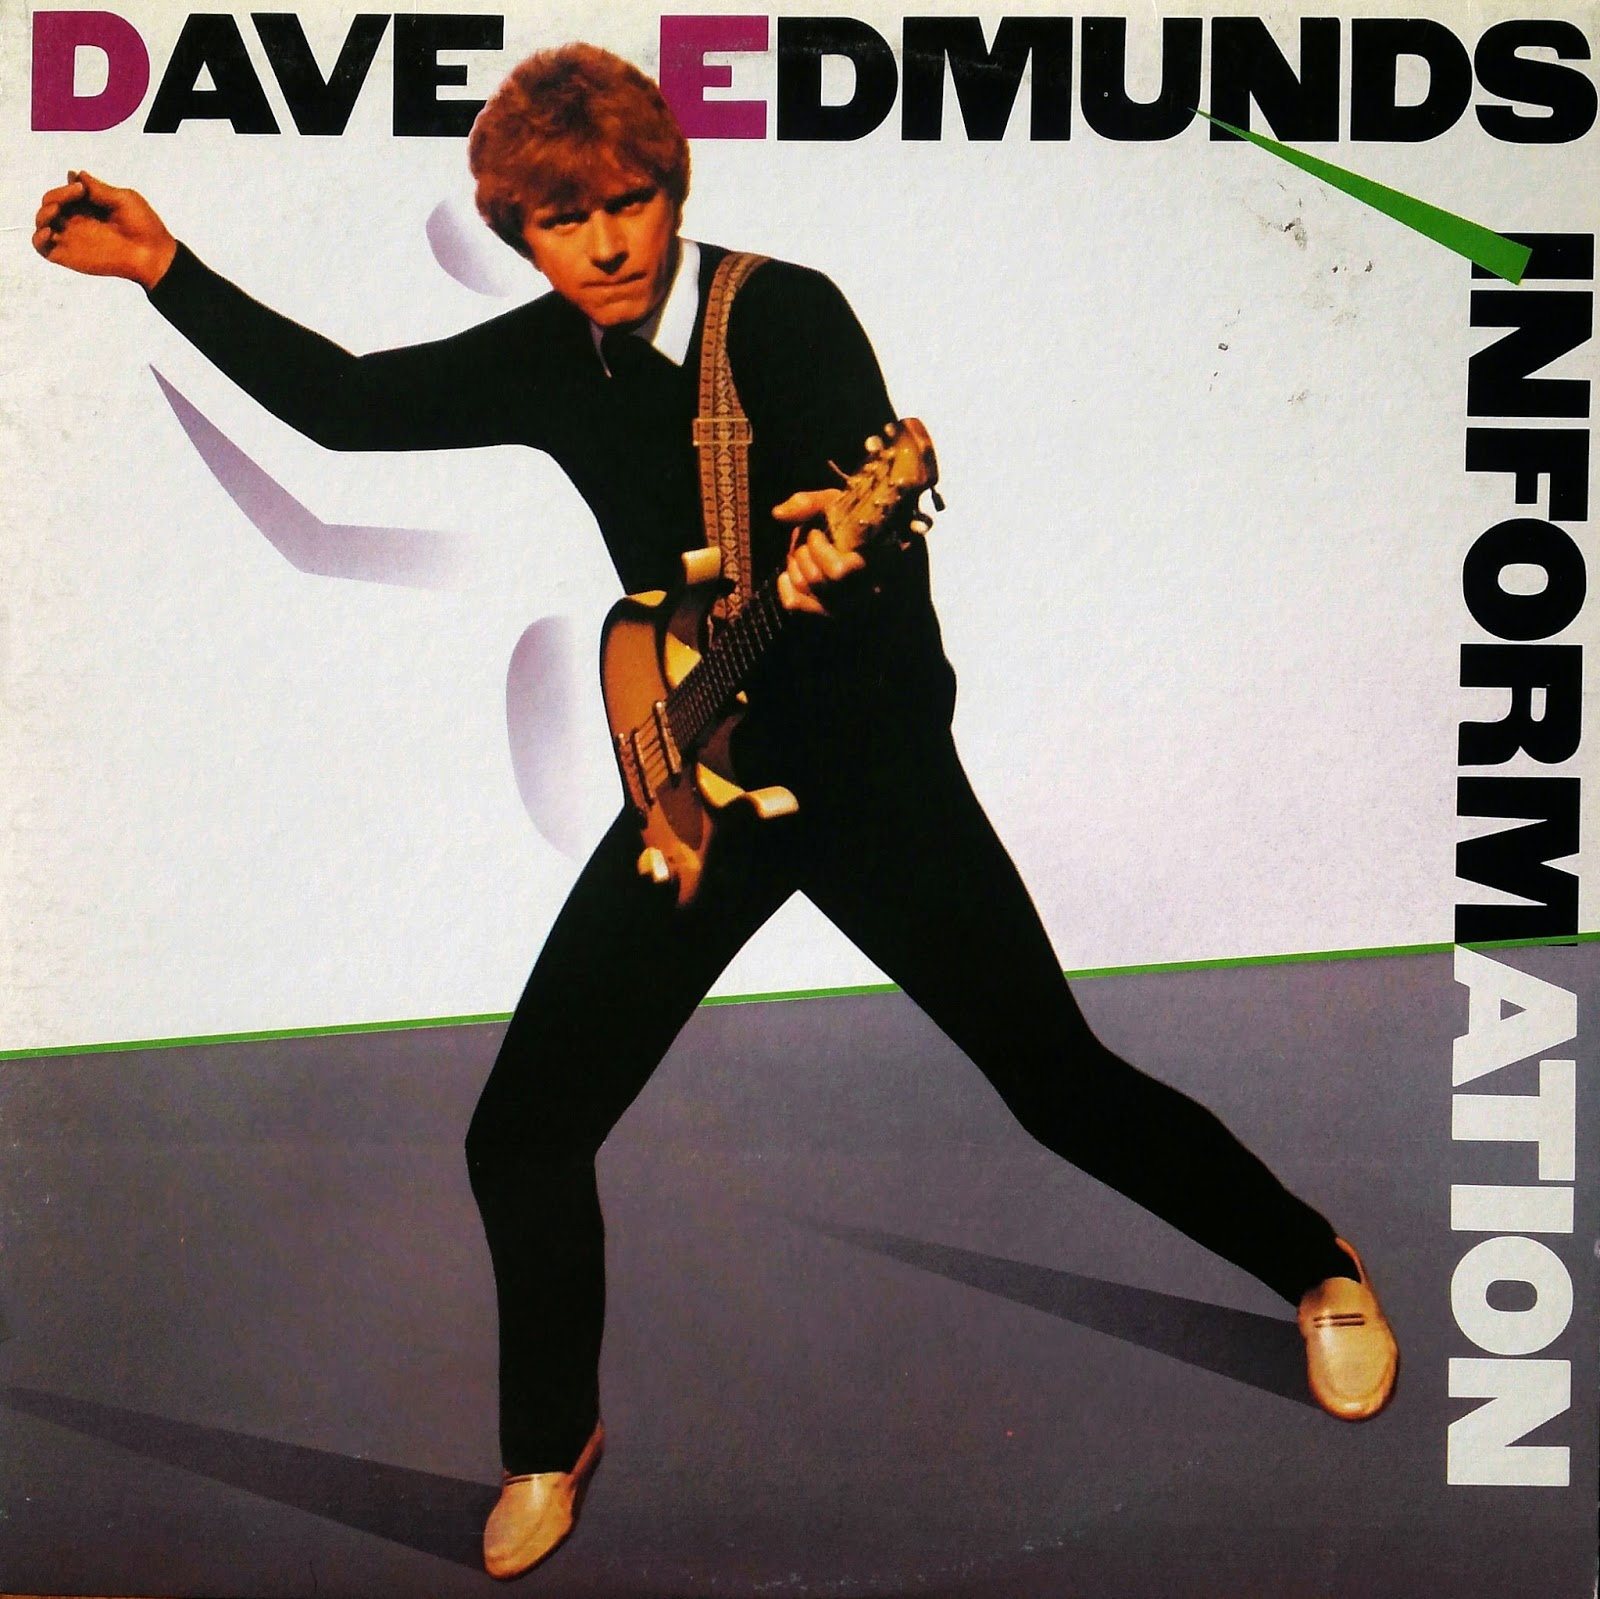 Dave Edmunds Announces His Retirement